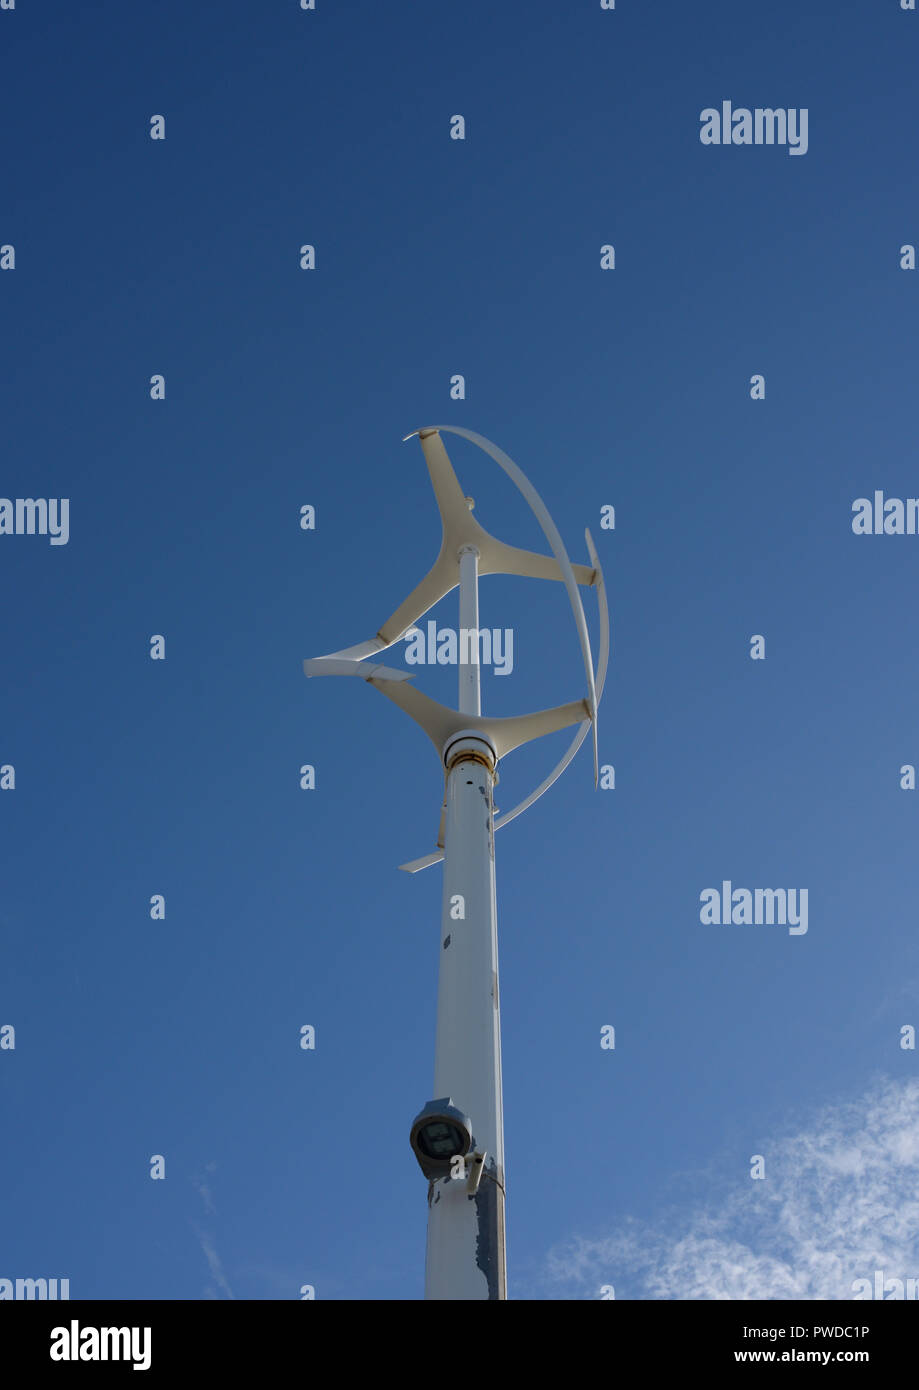 Vertical Axis Wind Turbine Stock Photos & Vertical Axis Wind Turbine